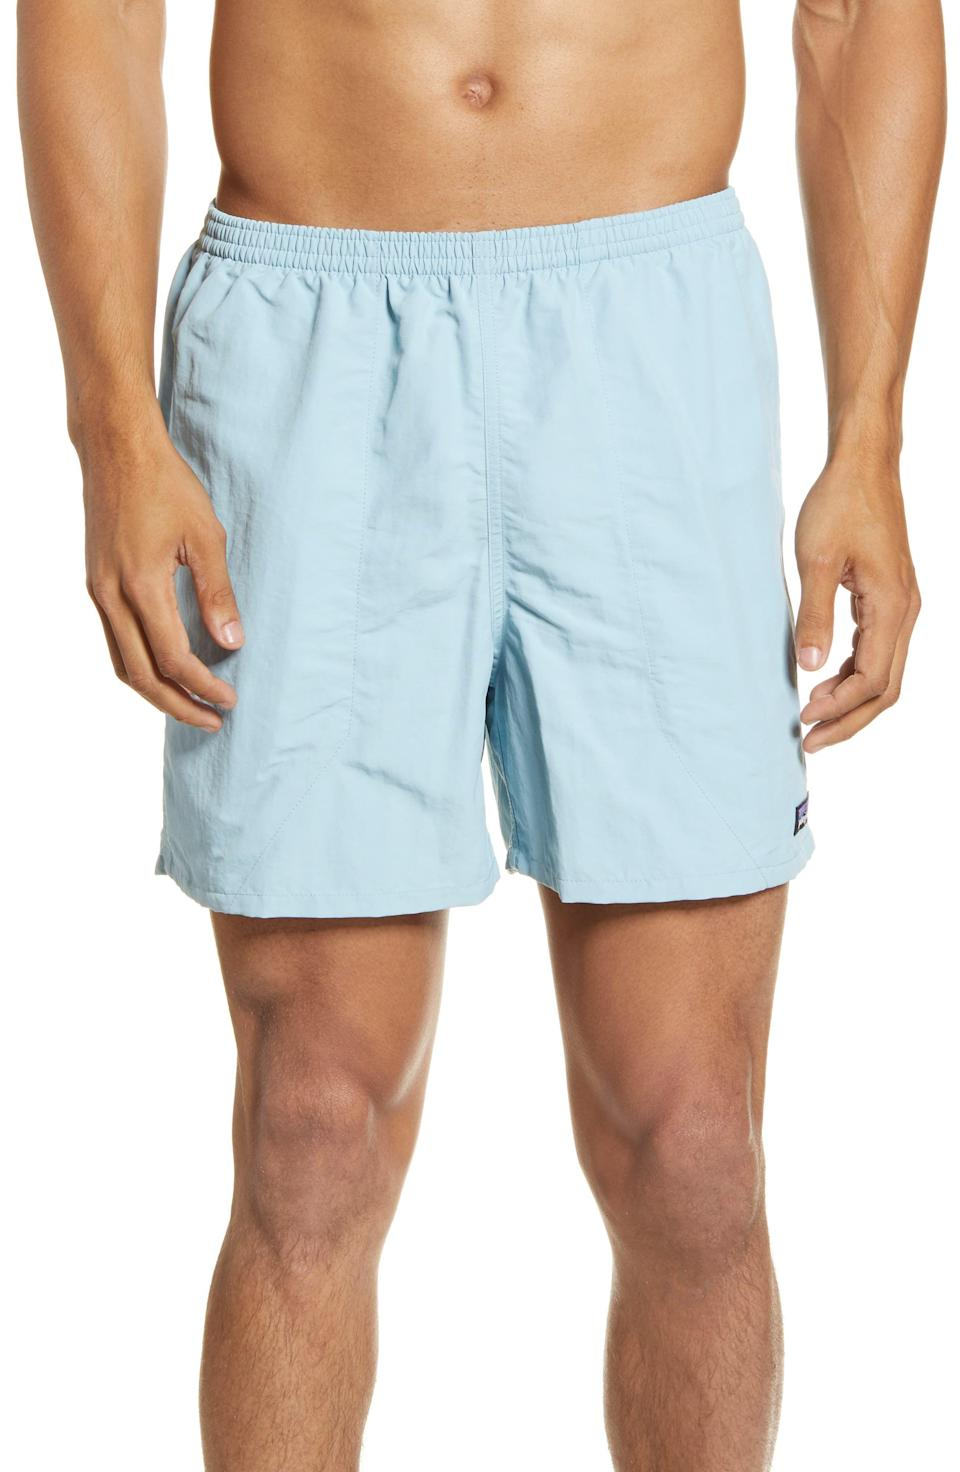 """<p><strong>PATAGONIA</strong></p><p>nordstrom.com</p><p><strong>$33.00</strong></p><p><a href=""""https://go.redirectingat.com?id=74968X1596630&url=https%3A%2F%2Fwww.nordstrom.com%2Fs%2Fpatagonia-baggies-5-inch-swim-trunks%2F6116277&sref=https%3A%2F%2Fwww.esquire.com%2Fstyle%2Fg36535194%2Fnordstrom-mens-sale-half-yearly-spring-2021%2F"""" rel=""""nofollow noopener"""" target=""""_blank"""" data-ylk=""""slk:Shop Now"""" class=""""link rapid-noclick-resp"""">Shop Now</a></p><p>People may call 'em swim trunks, but make no mistake: Baggies are the go-anywhere, do-anything shorts you'll be wearing all summer.</p>"""